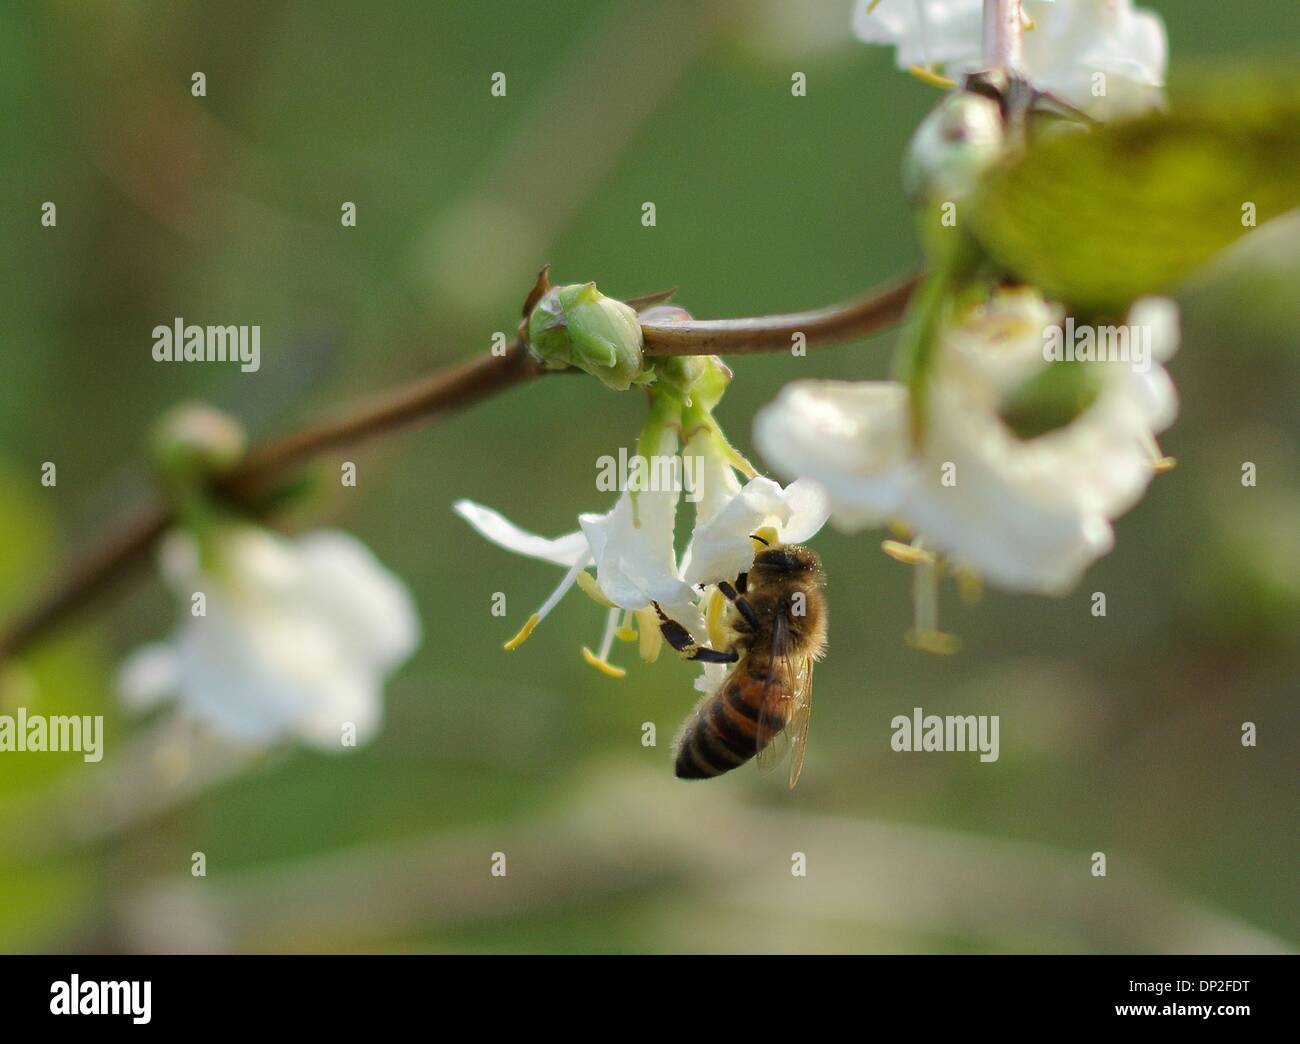 A bee sits in a blossom in Cologne, Germany, 07 January 2014. The unusually warm weather drives the bees out of their hives. Photo: Henning Kaiser/dpa - Stock Image